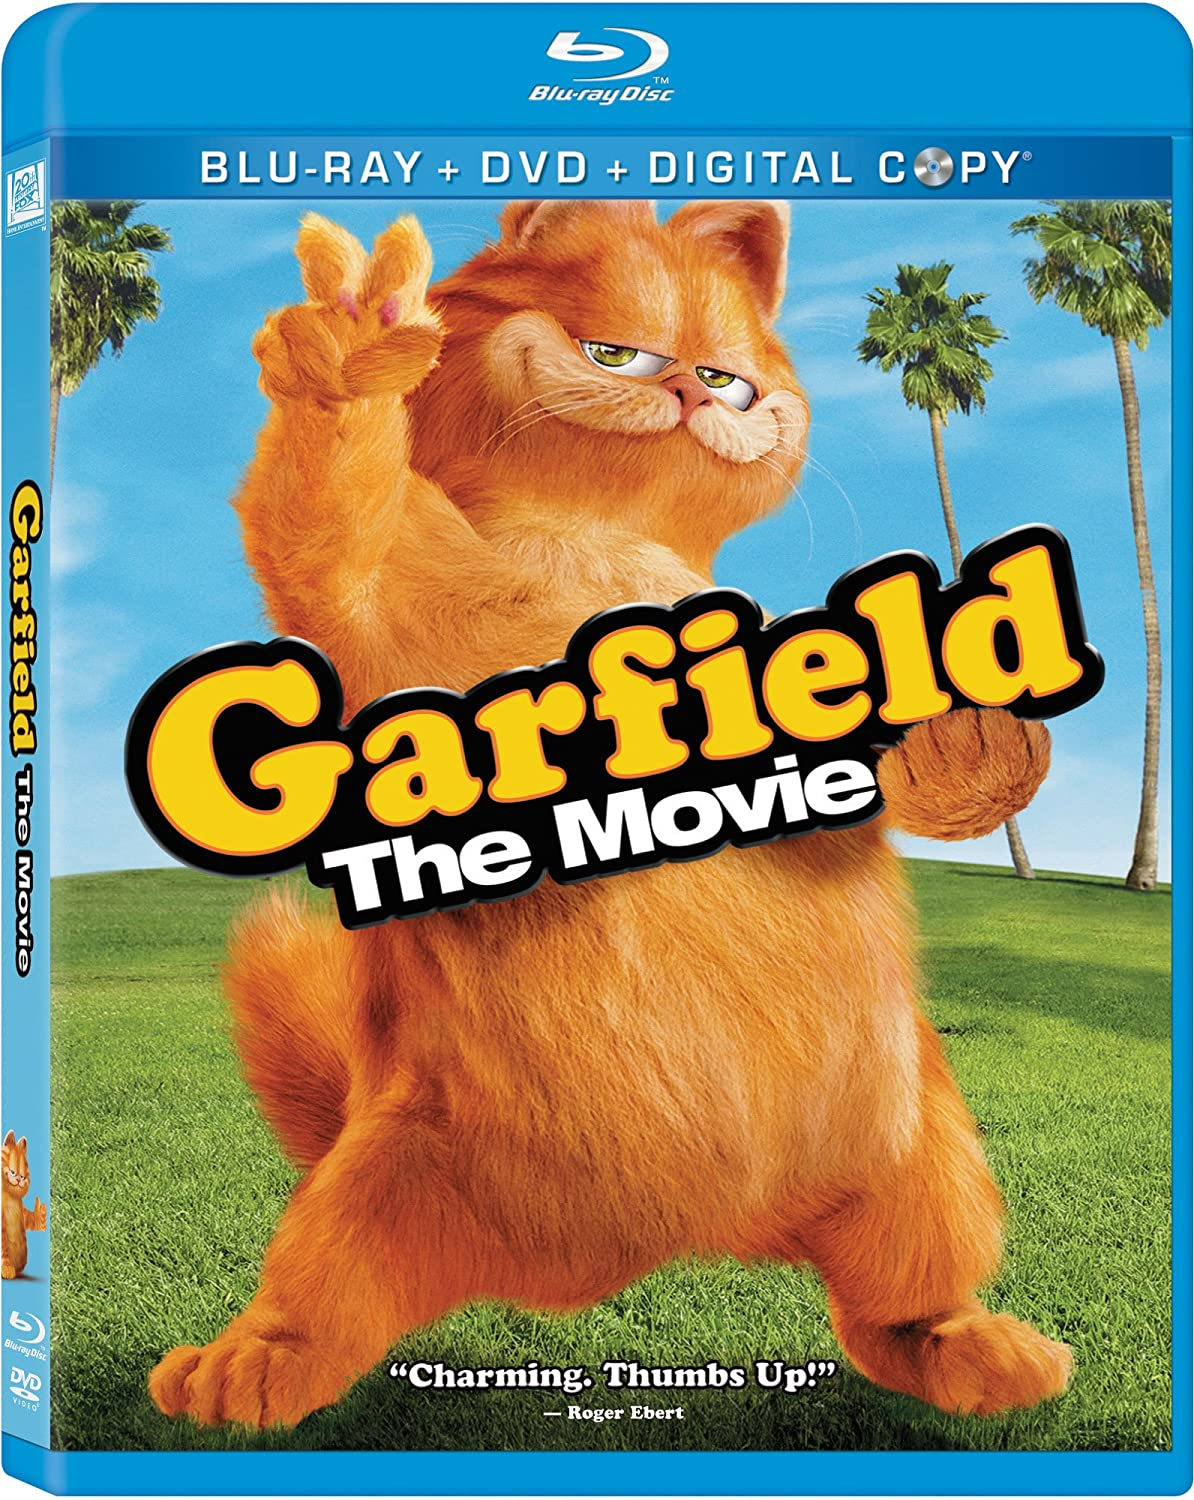 Amazon Com Garfield The Movie Triple Play Blu Ray Garfield The Movie Movies Tv